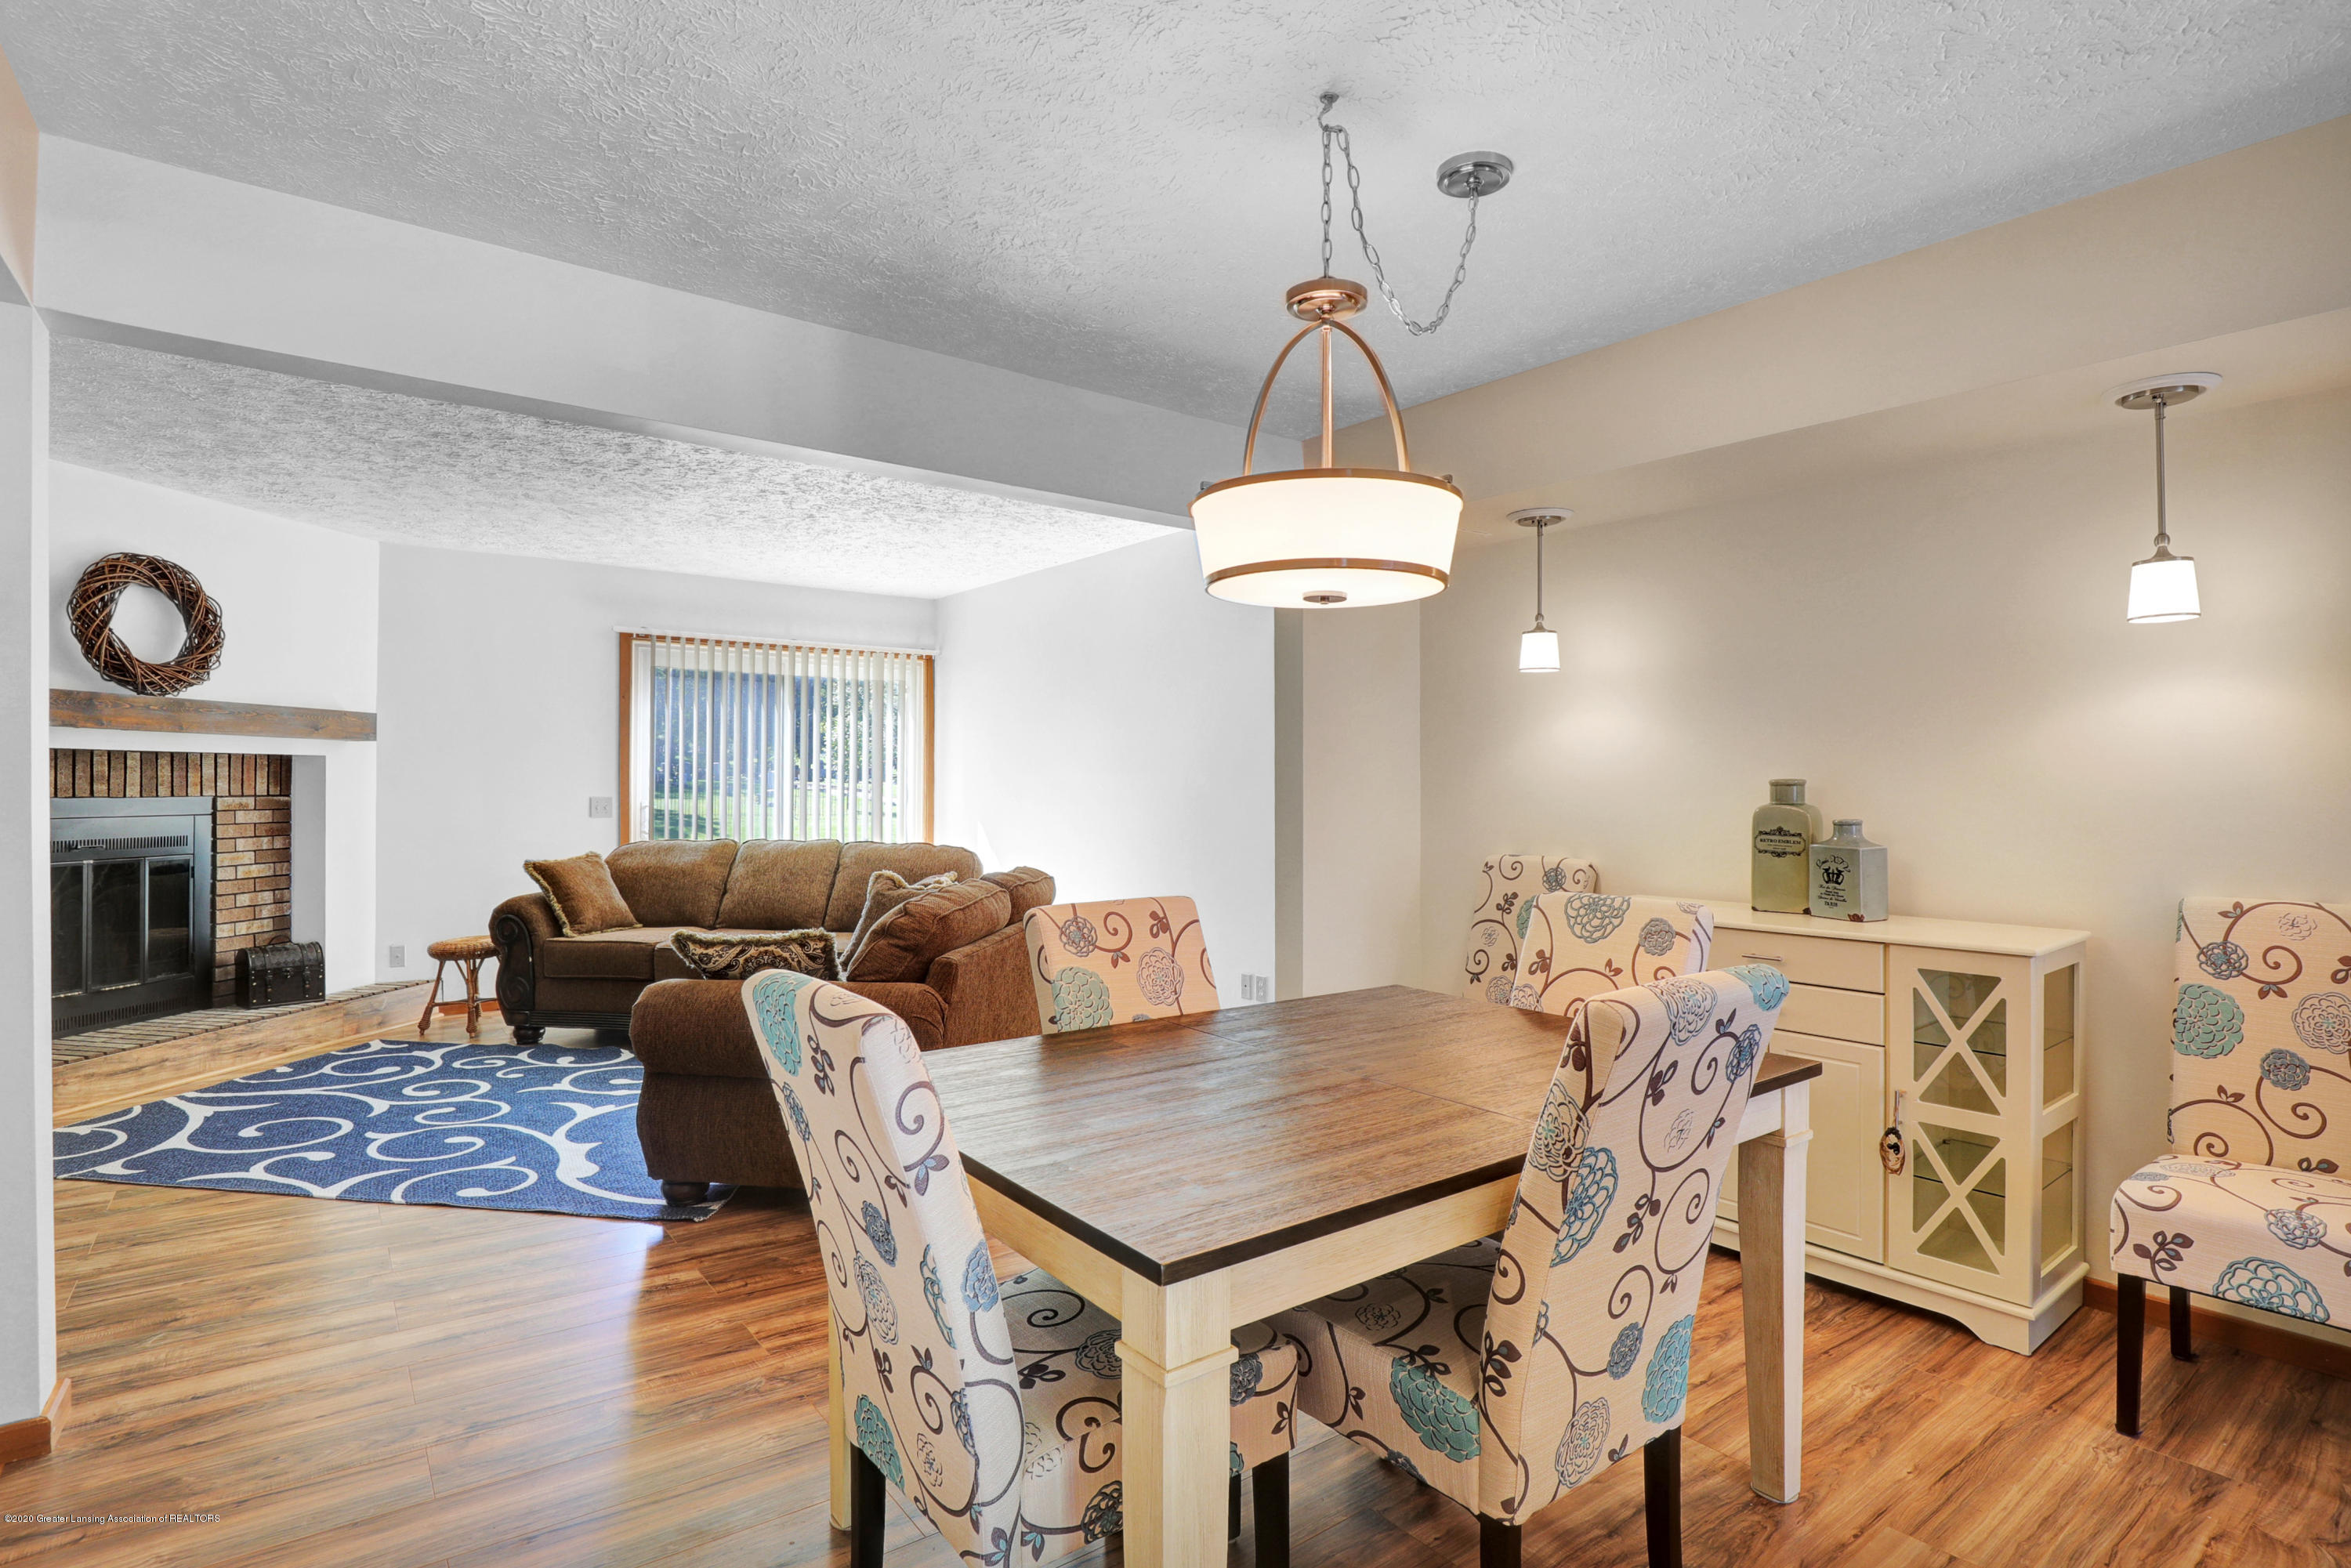 802 Randy Ln - Dining area - 7